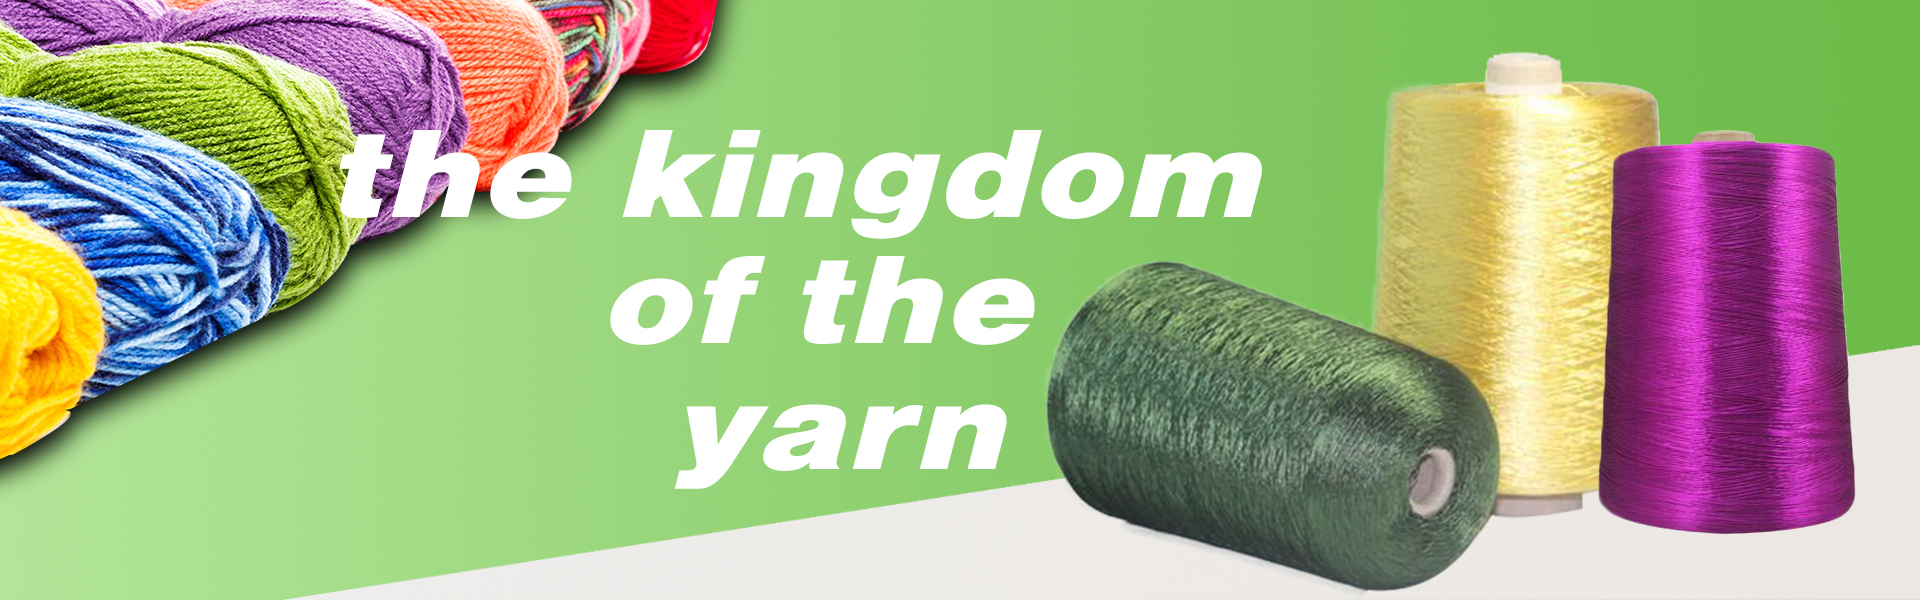 thread-and-yarn-manufacturer-Kingbird